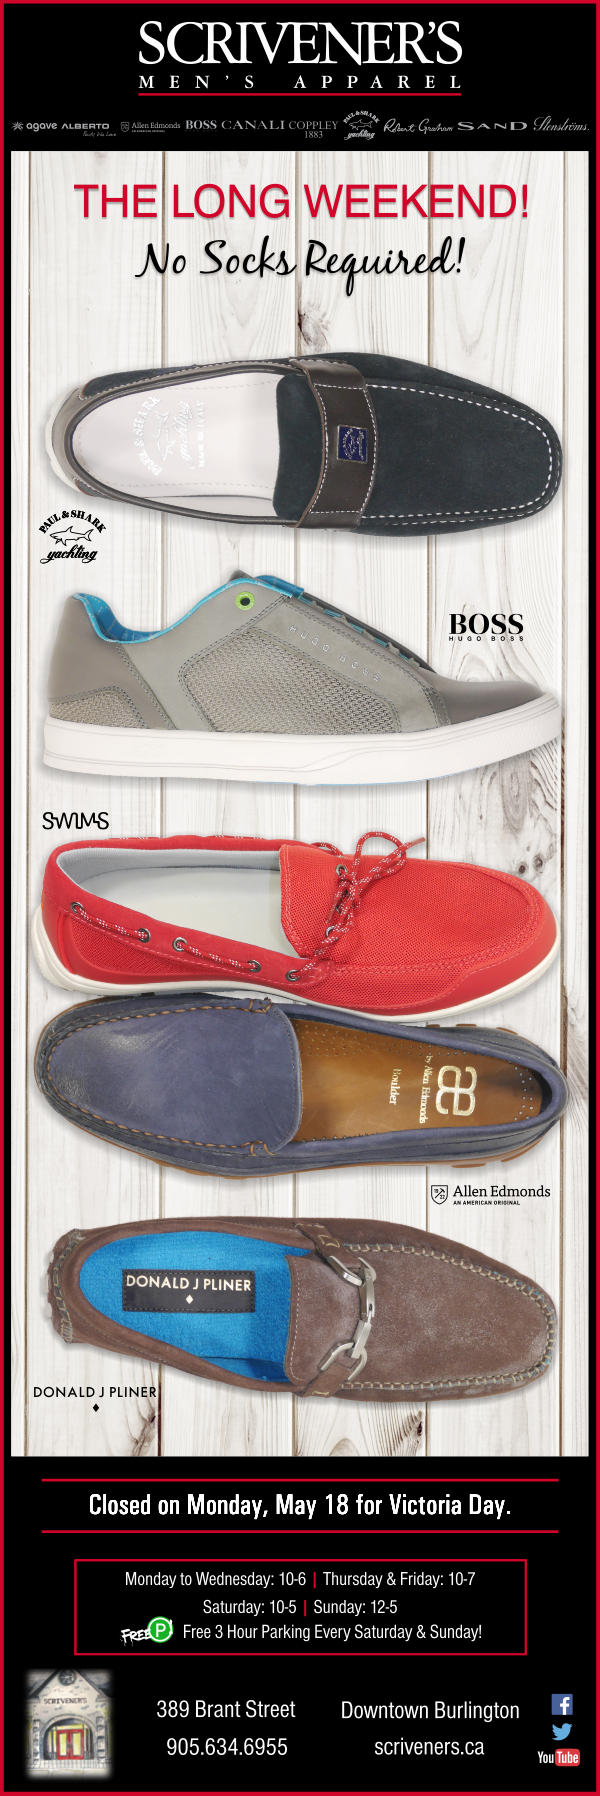 Long Weekend Shoes - No Socks Required